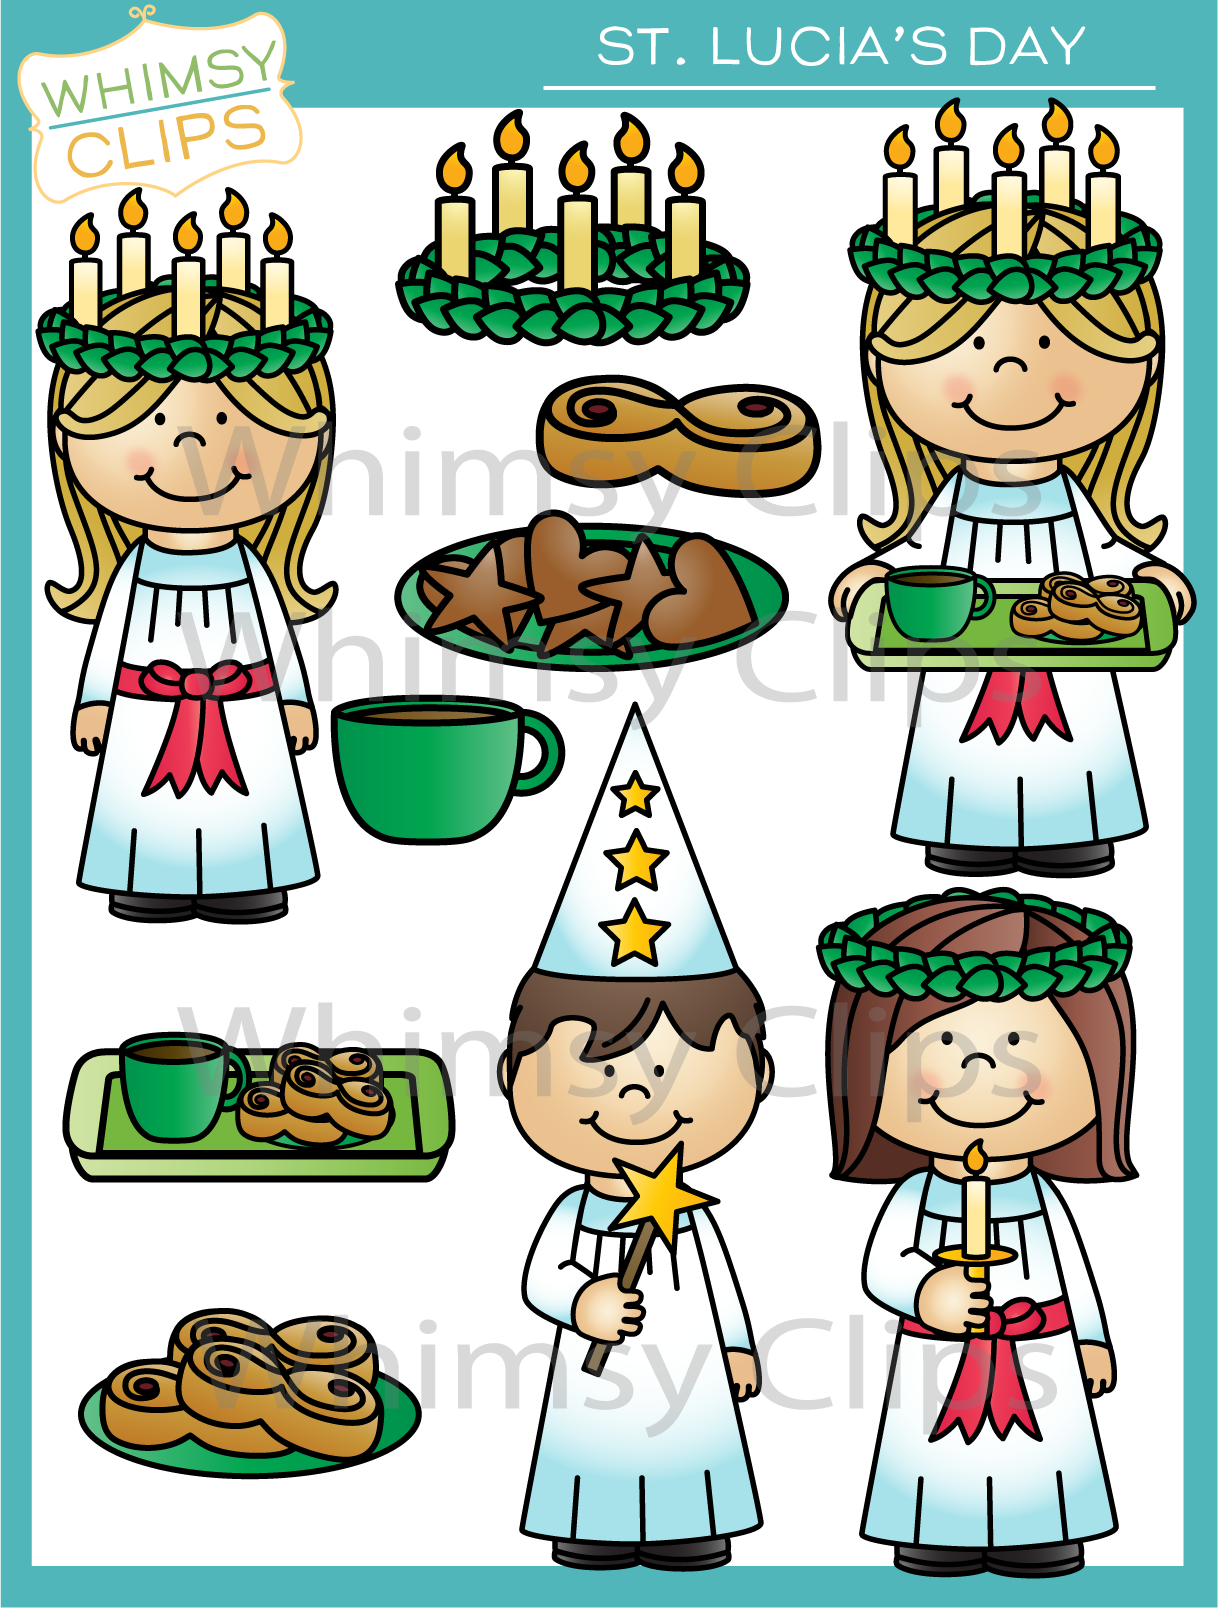 St. Lucia's Day , Images & Illustrations.